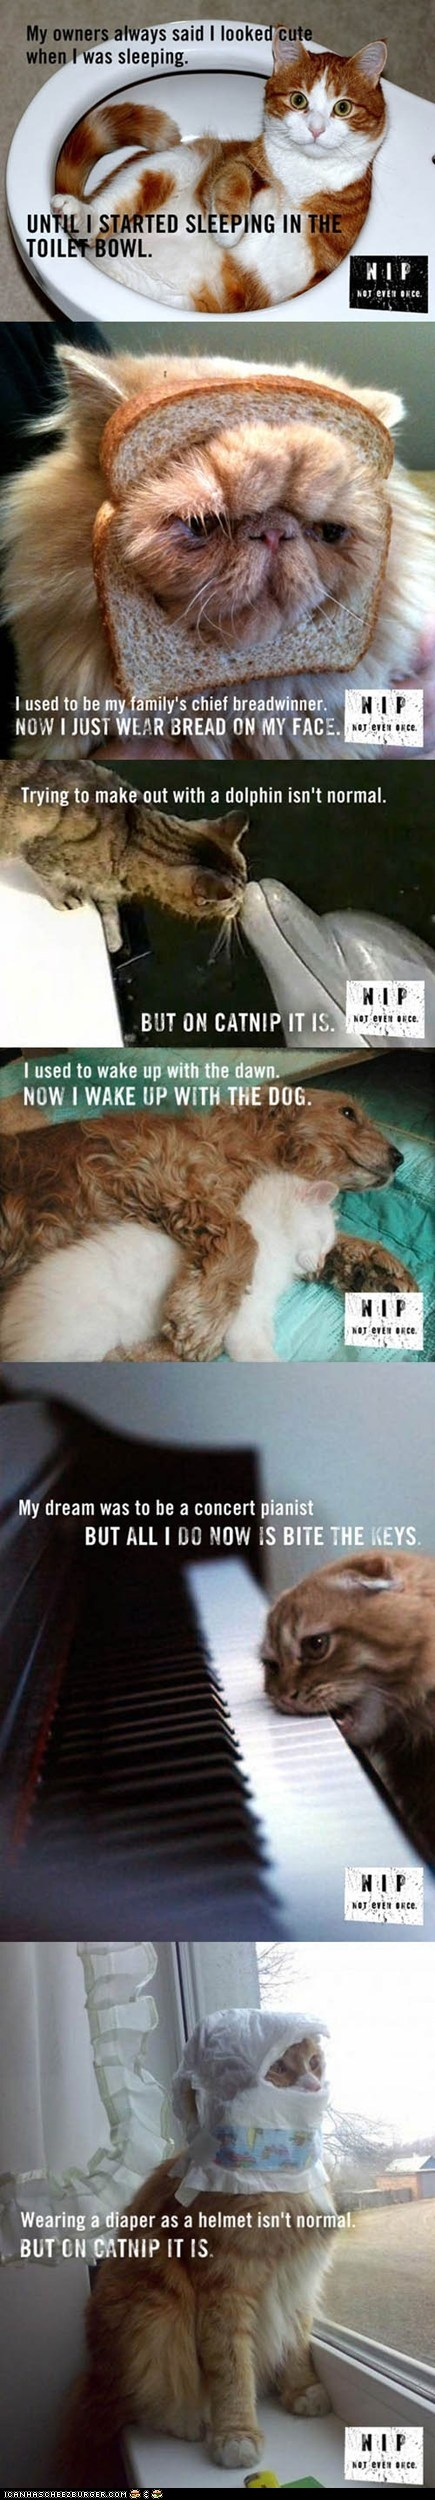 Catnip...not even once!